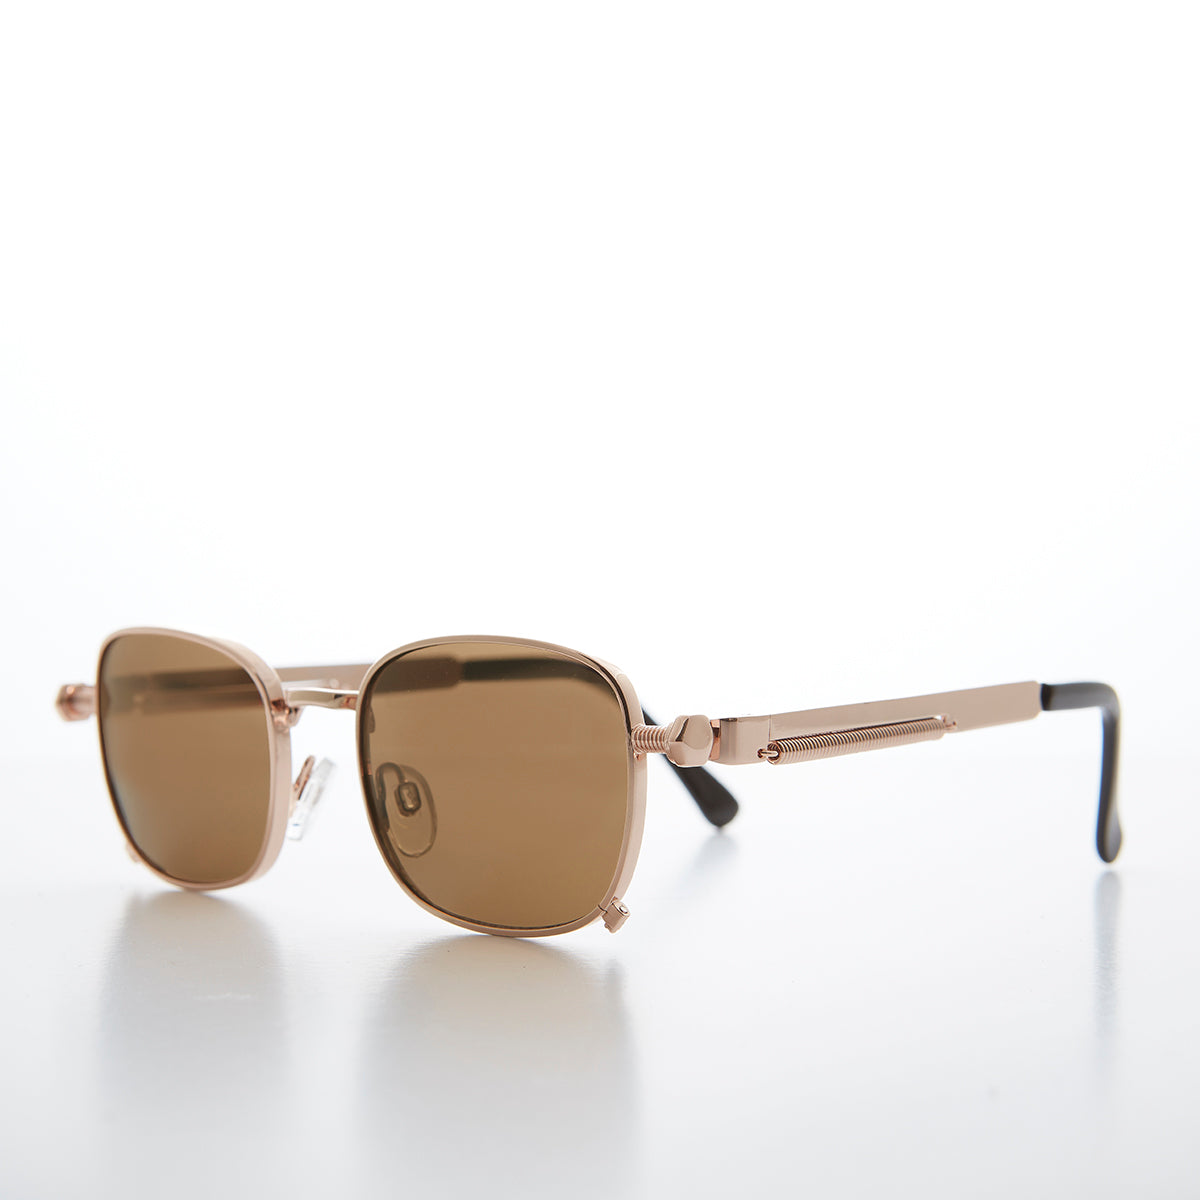 Tailored Steampunk Gold Sunglasses with Industrial Temples